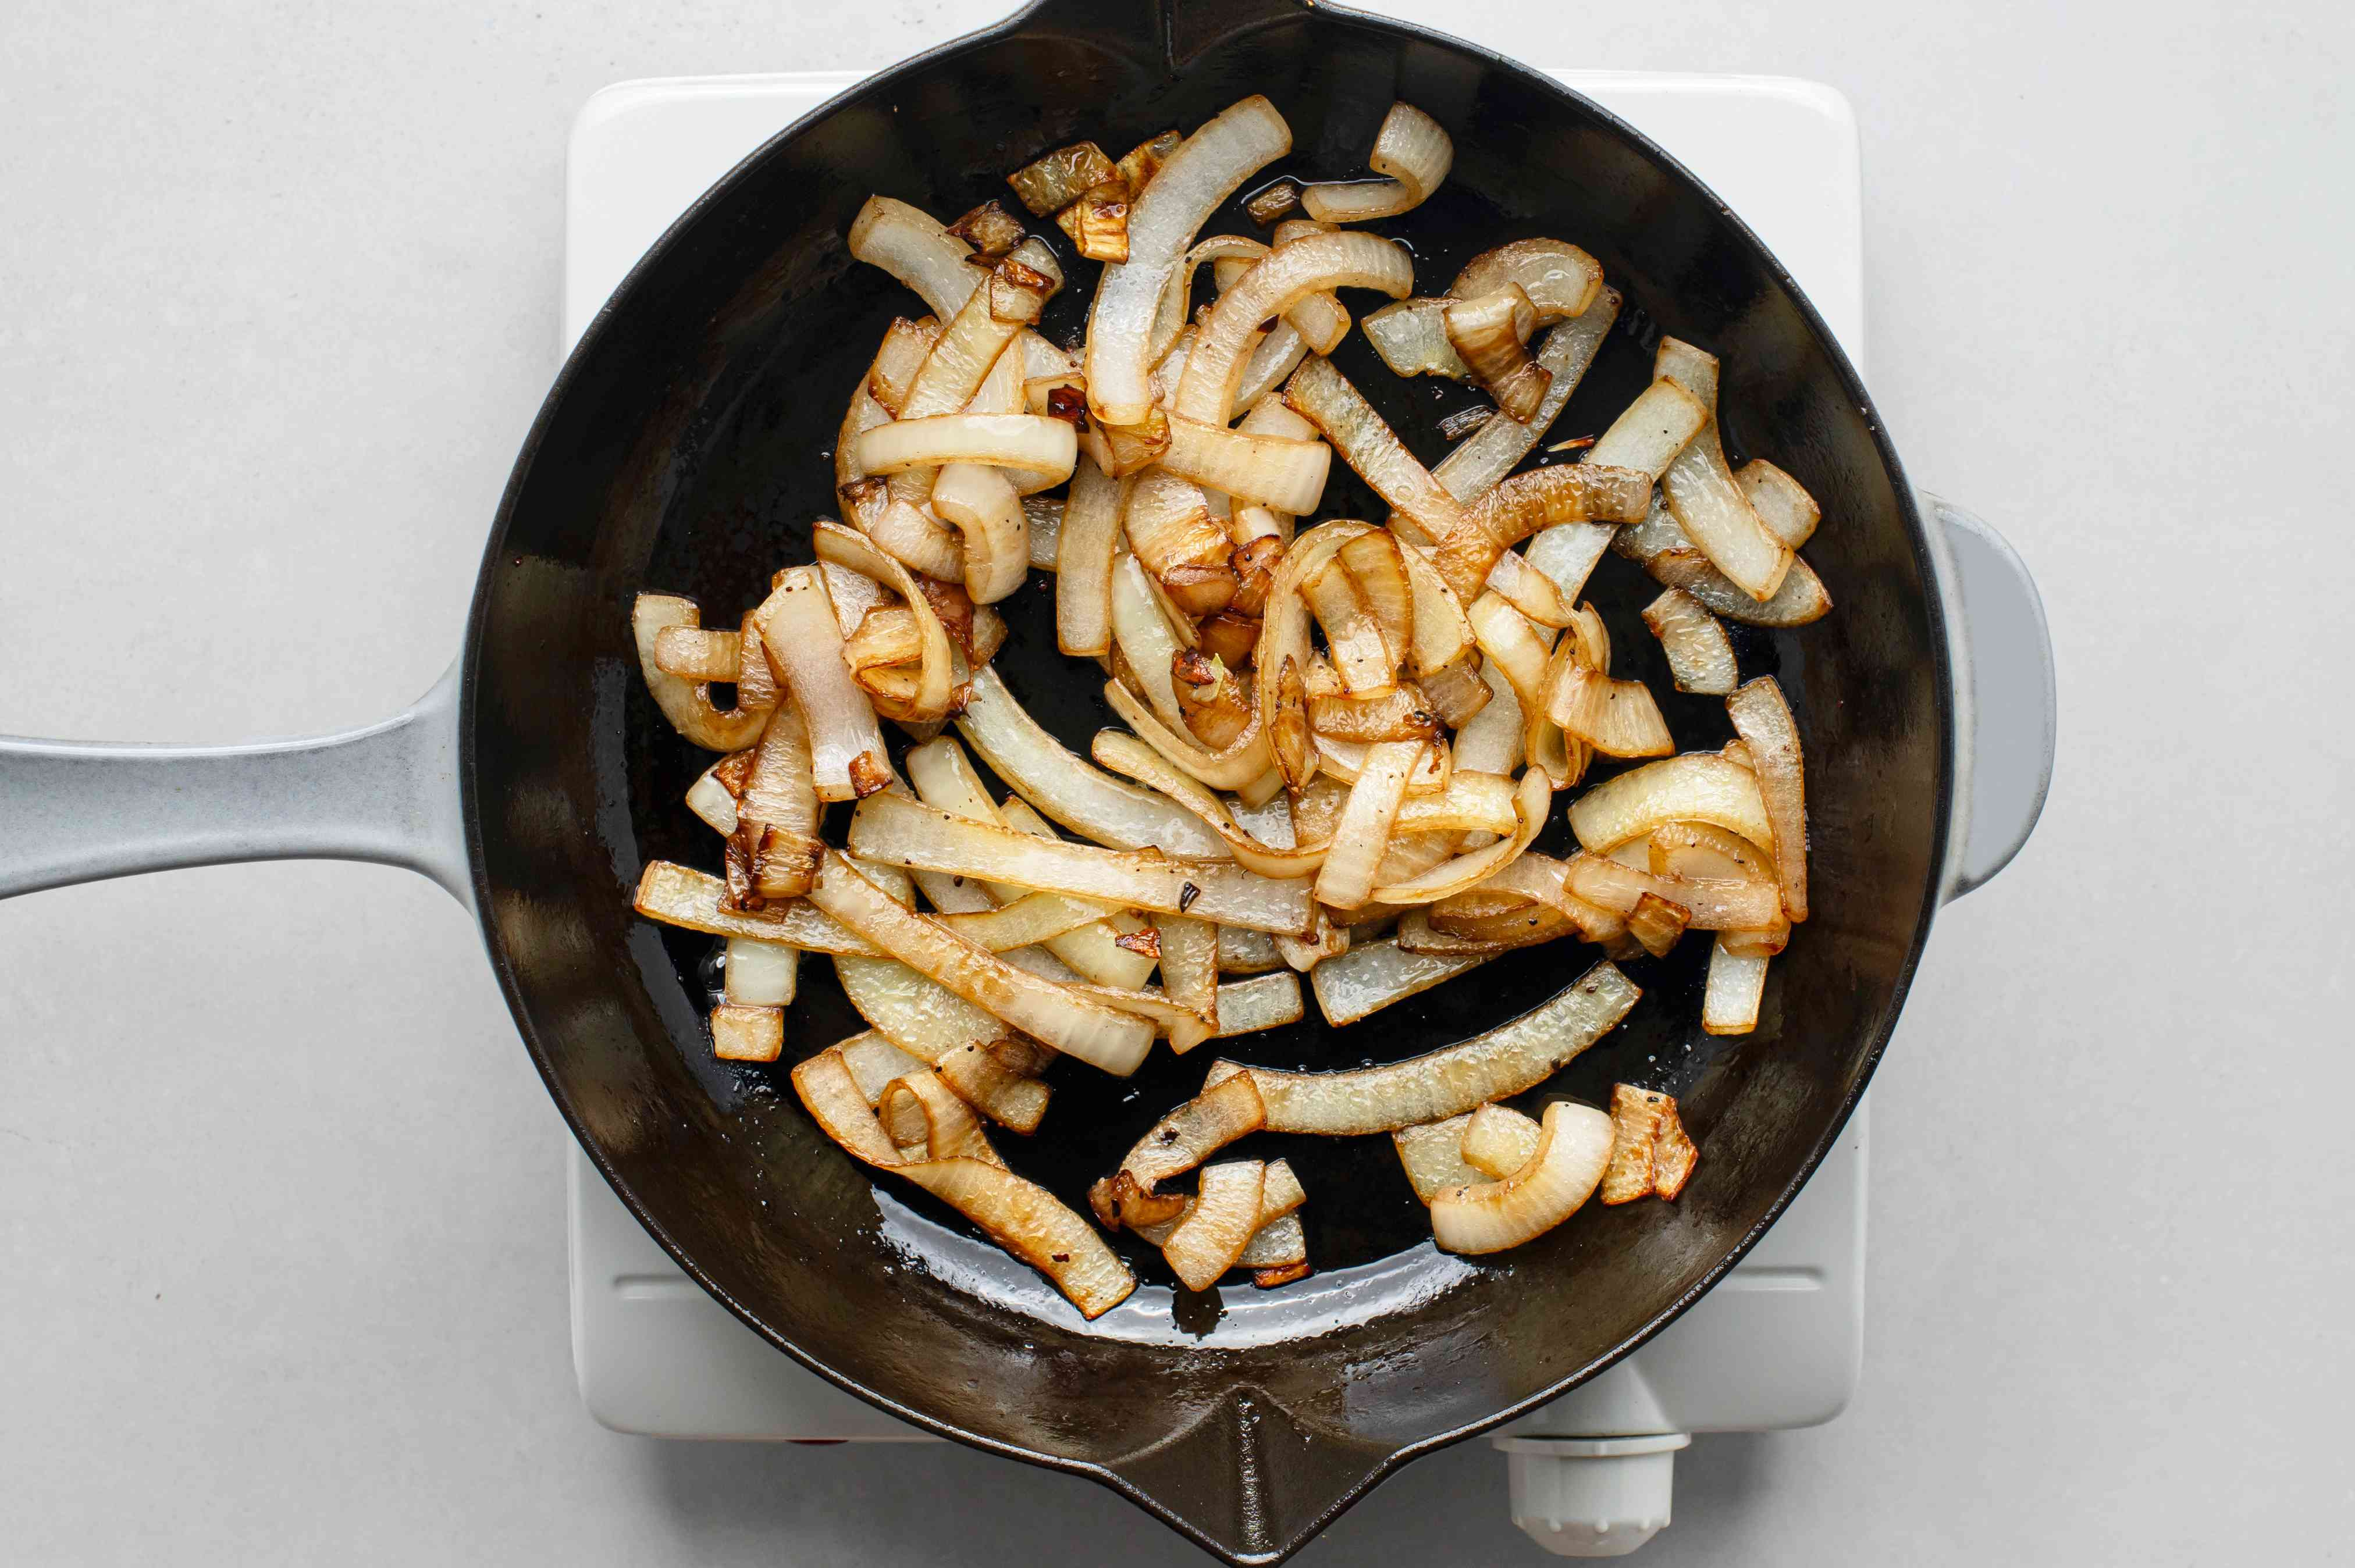 onions cooking in a skillet